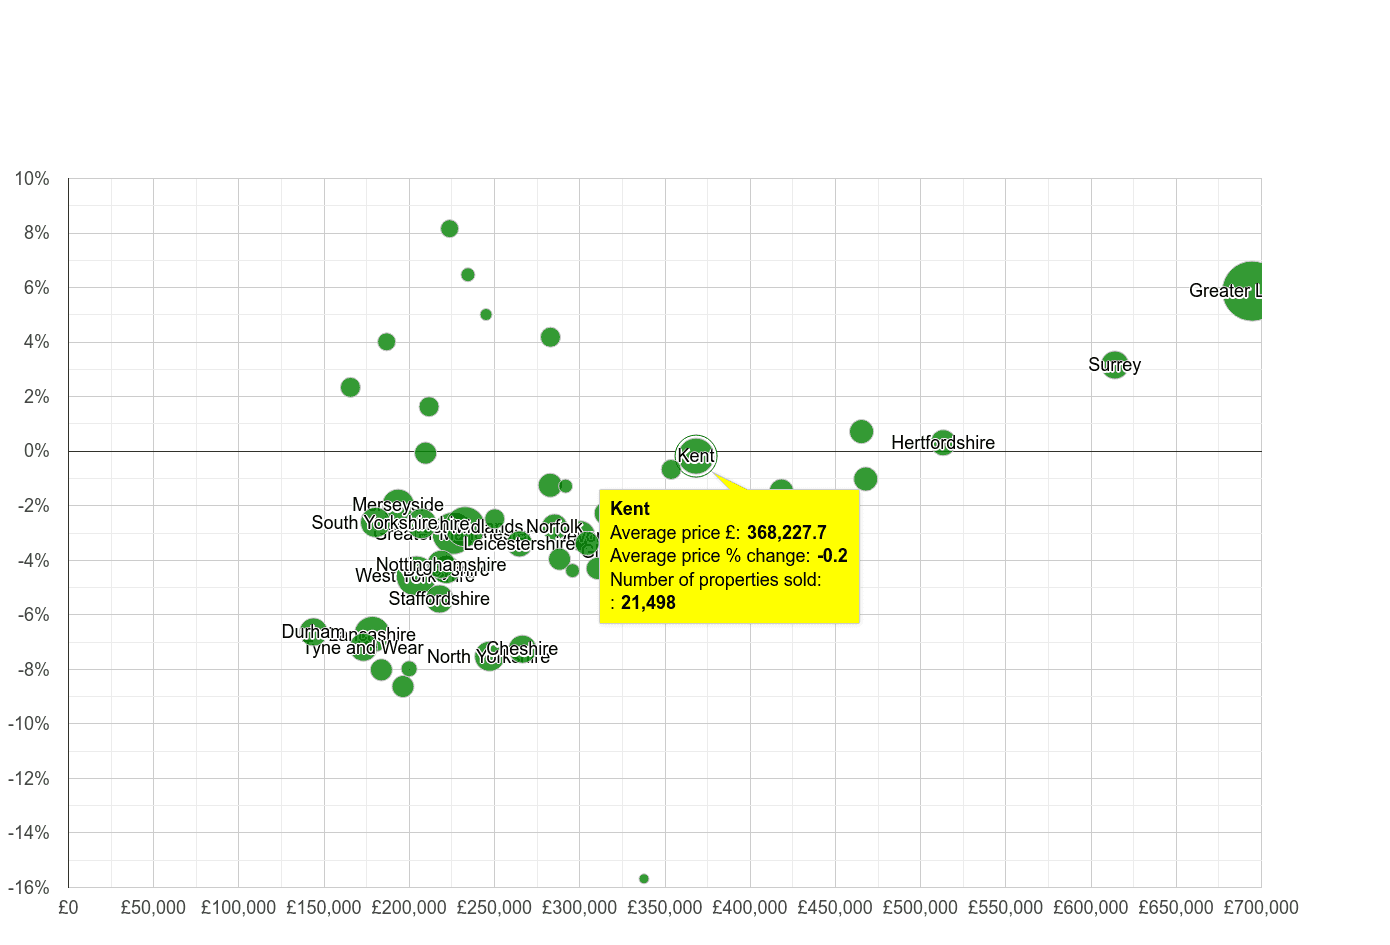 Kent house prices compared to other counties